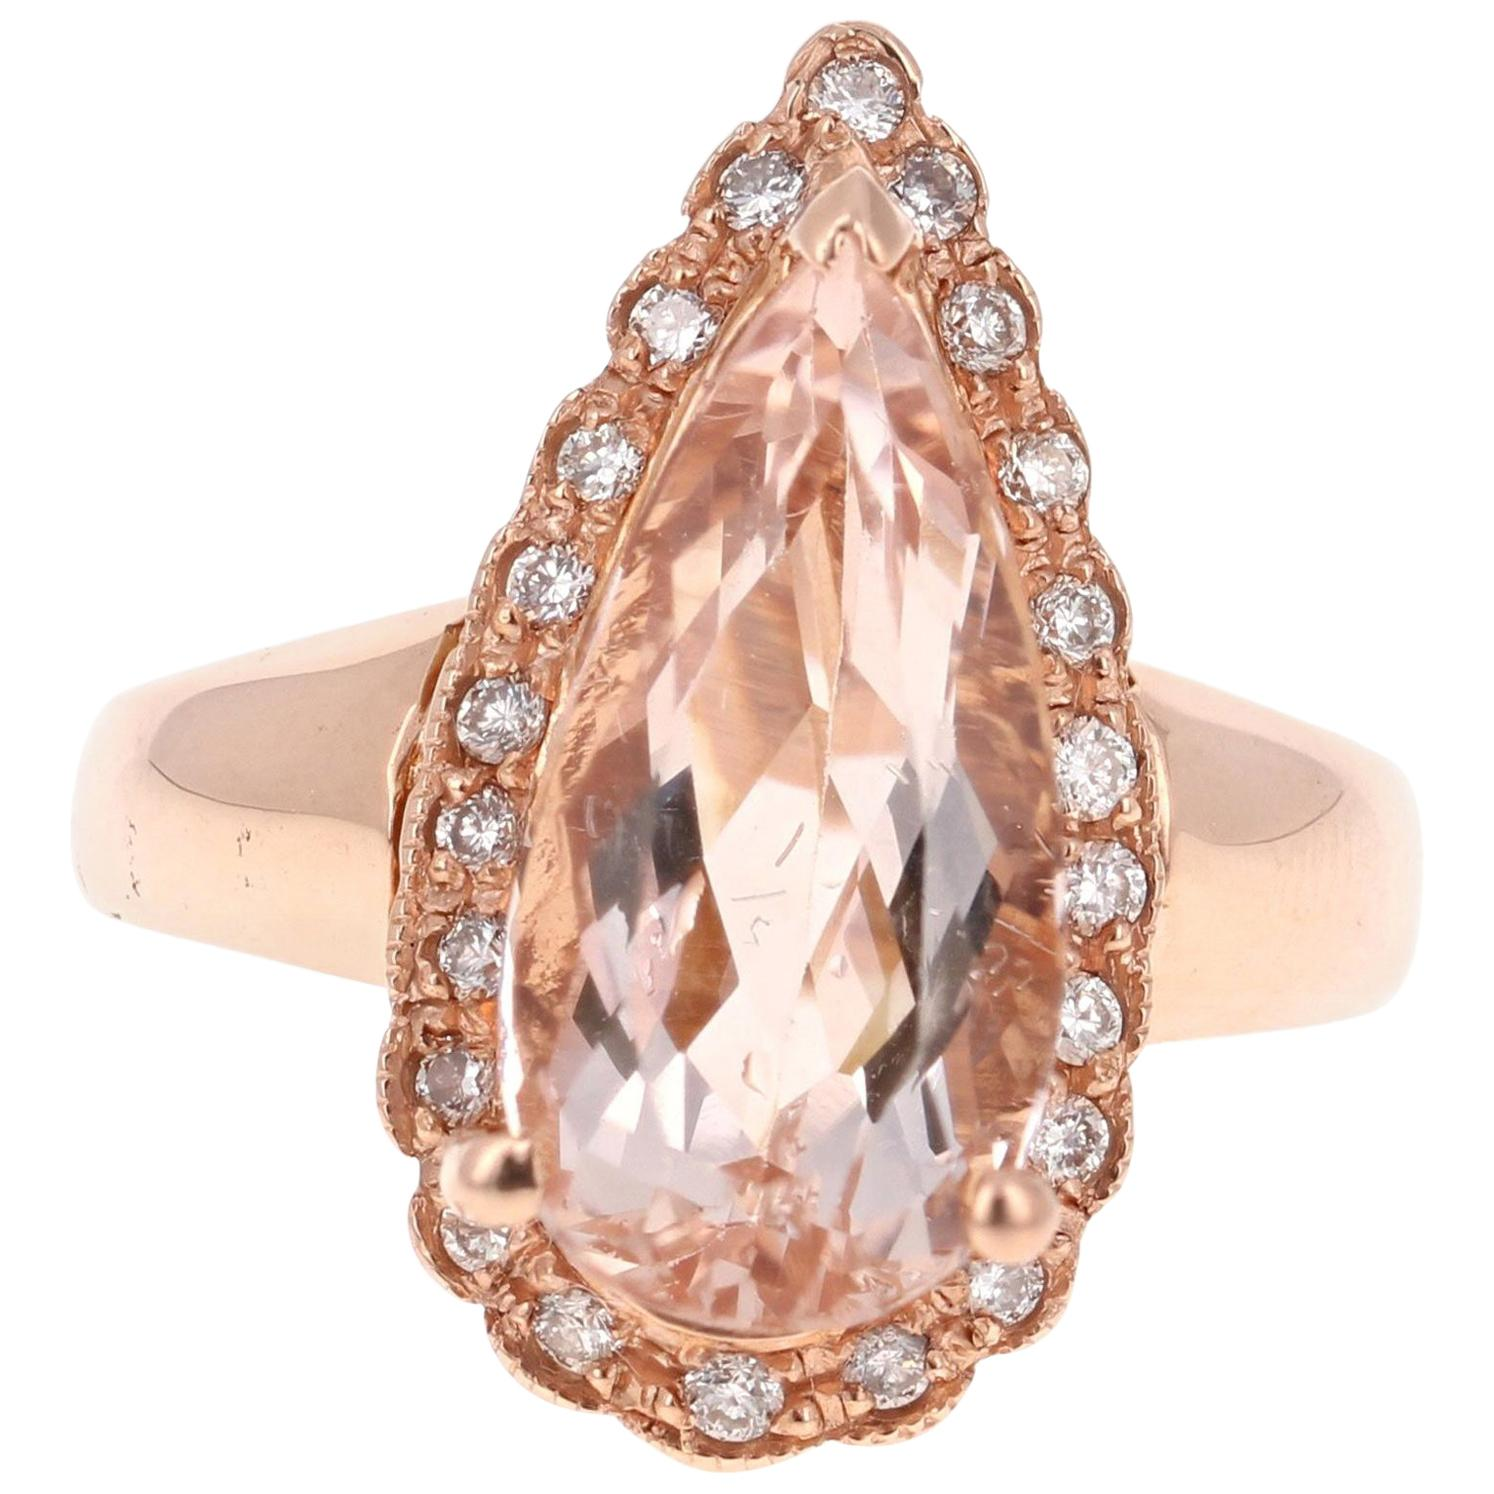 4.72 Carat Pear Cut Morganite Diamond 14 Karat Rose Gold Ring